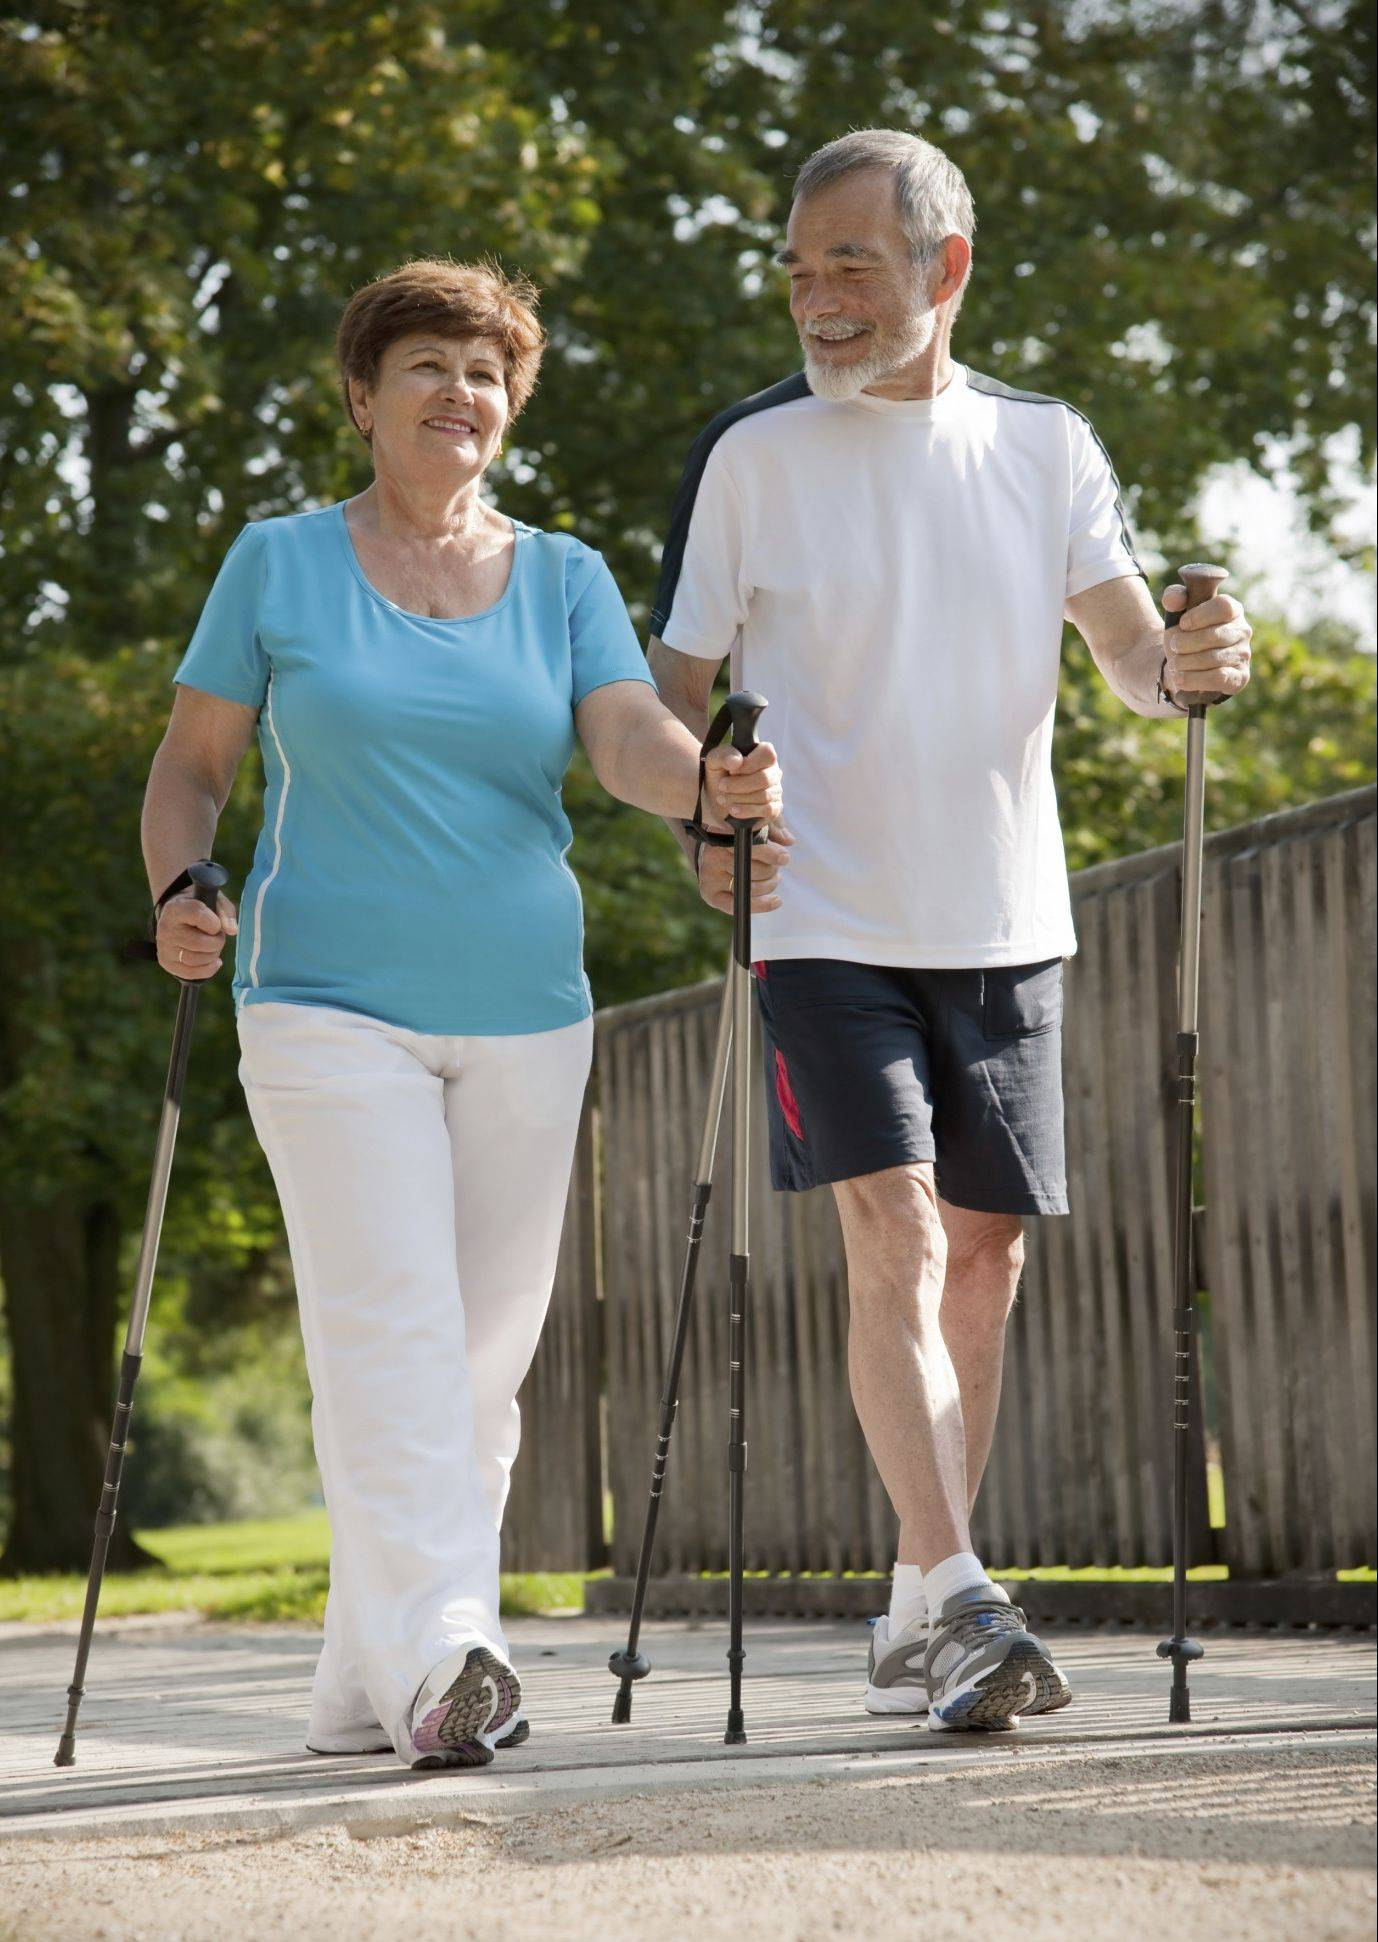 Nordic walking involves using poles, which exercises the arms and adds to the workout.